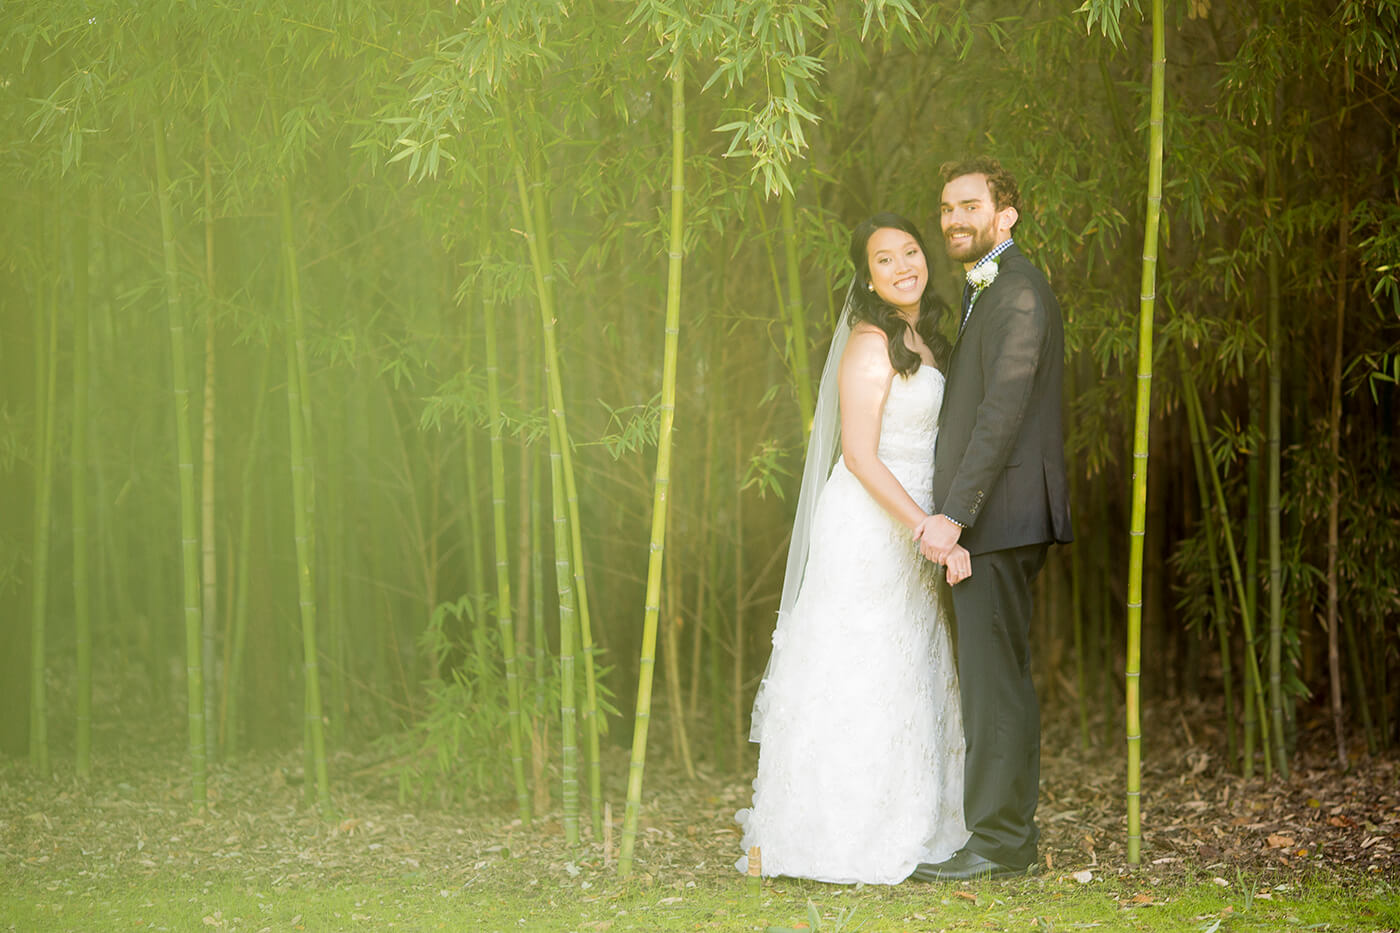 Wedding_Couples_Photographer_Austin_Texas_Dennis_Burnett_30